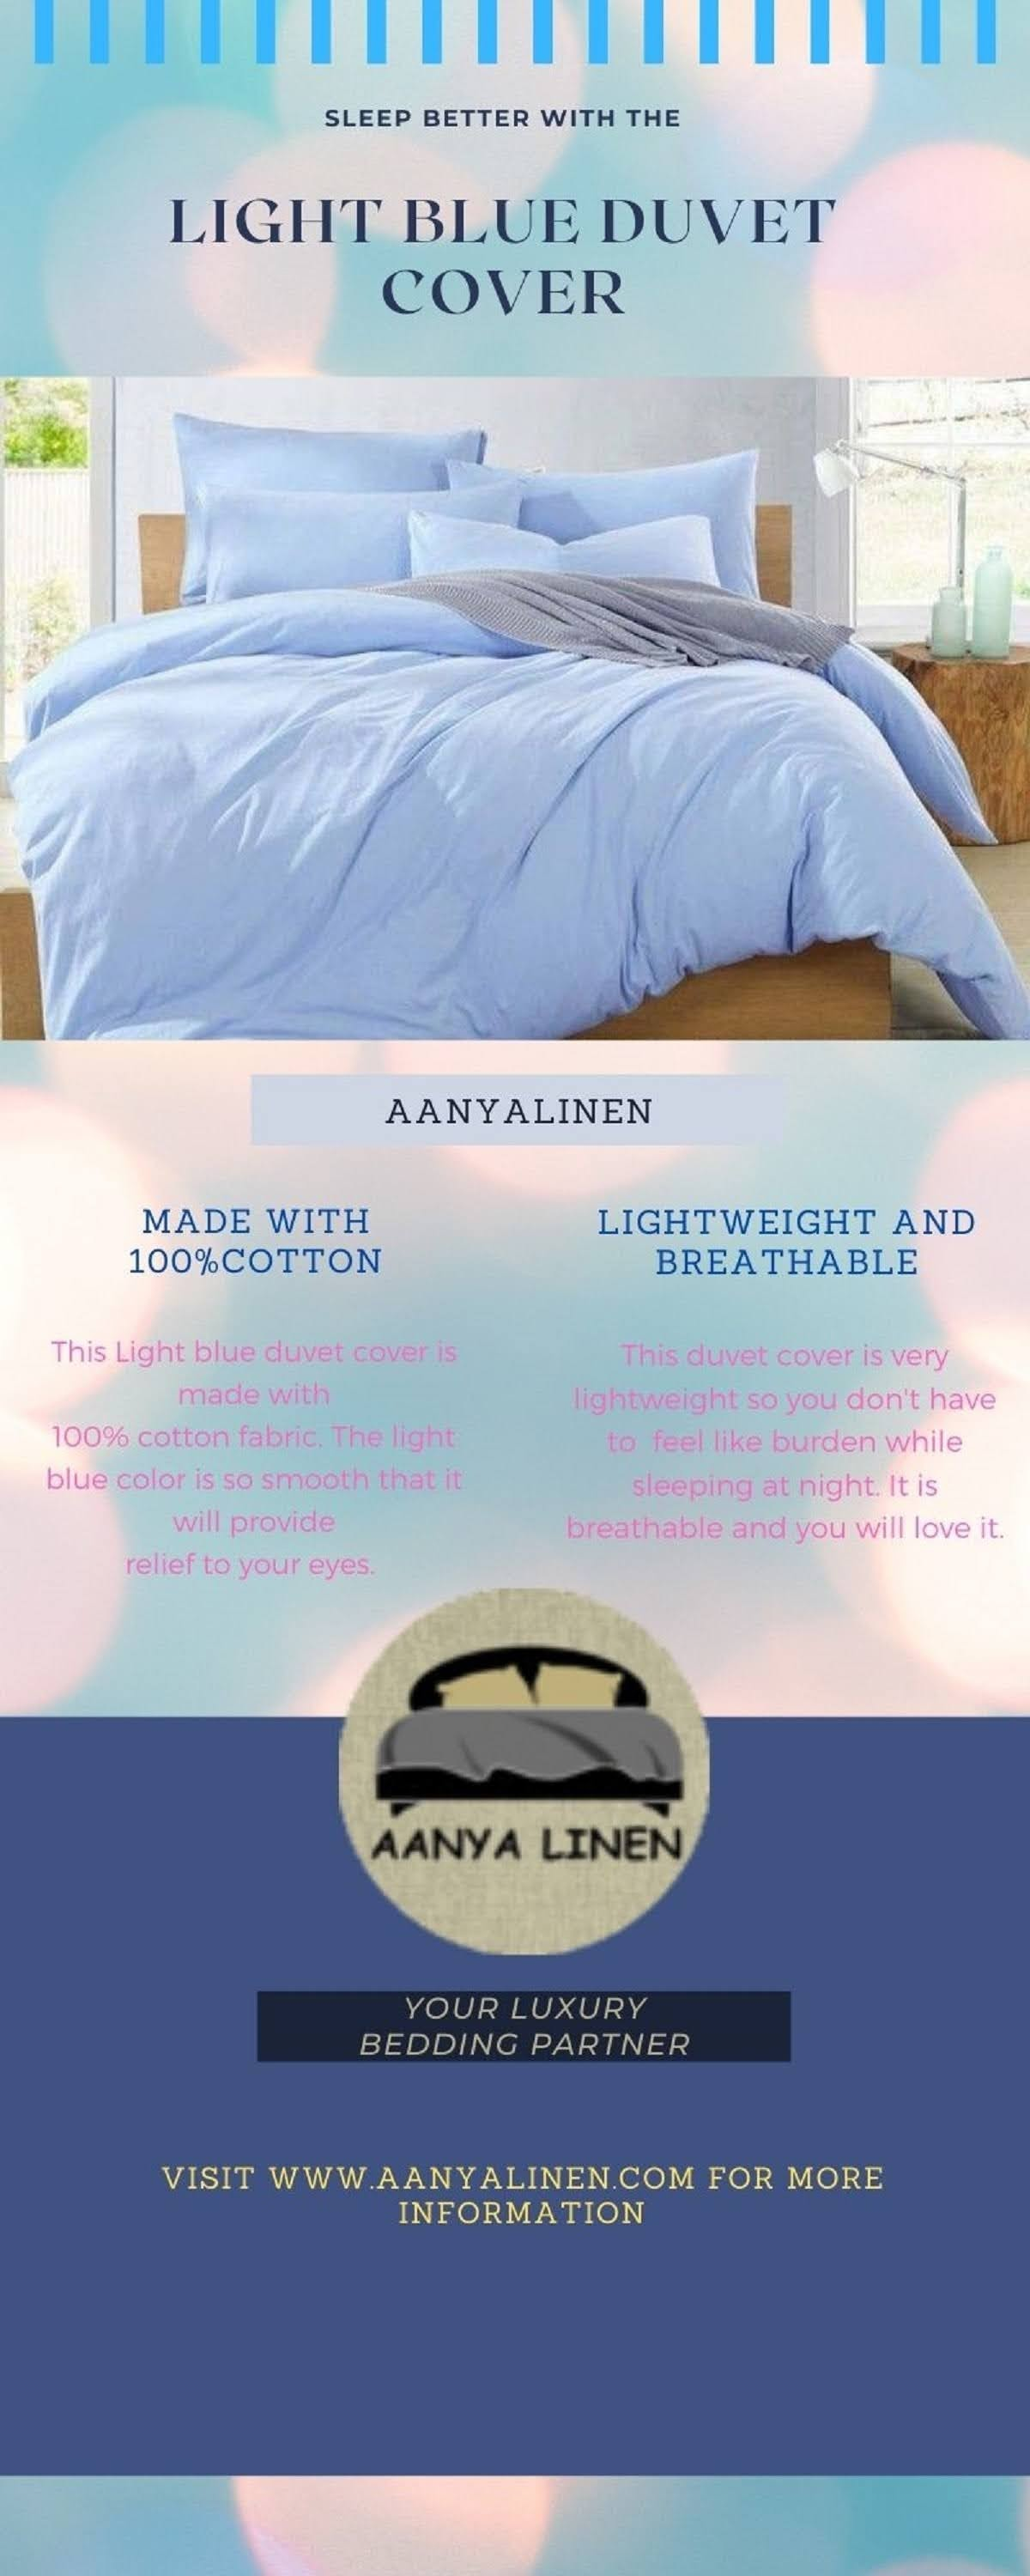 Beautiful light blue duvet cover #infographic